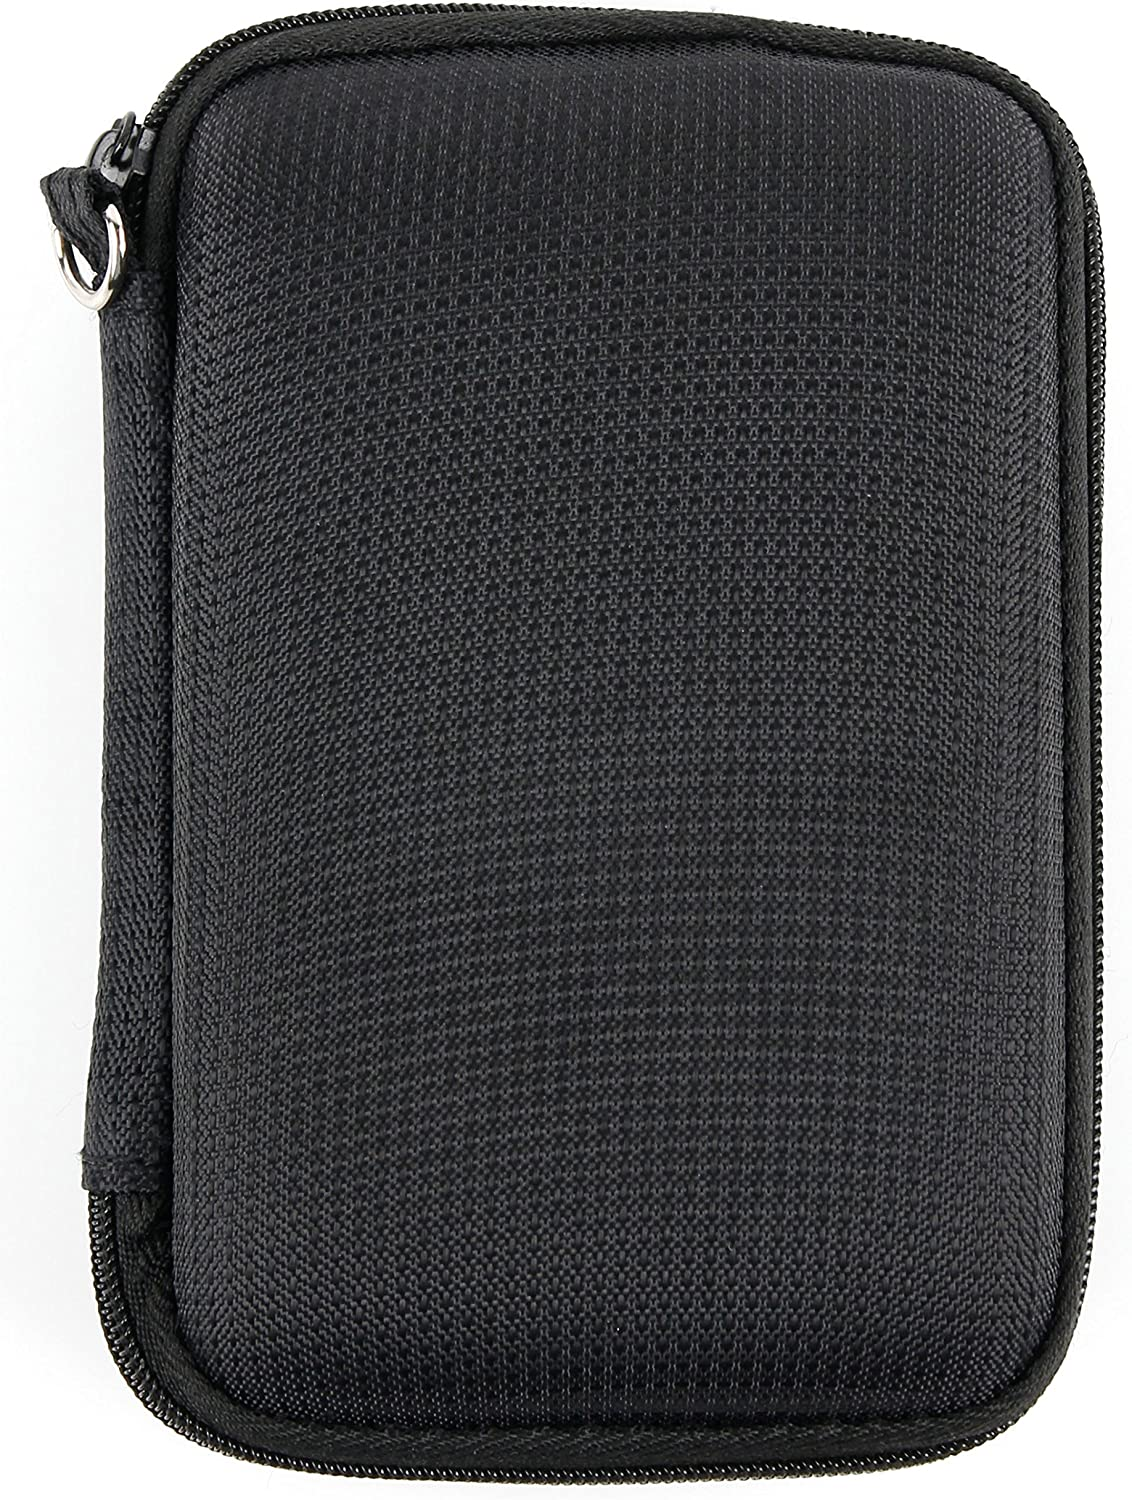 Compatible with The Diggro SW-98 DURAGADGET Black Water-Resistant Hard Shell Case with Ultra-Soft Lining